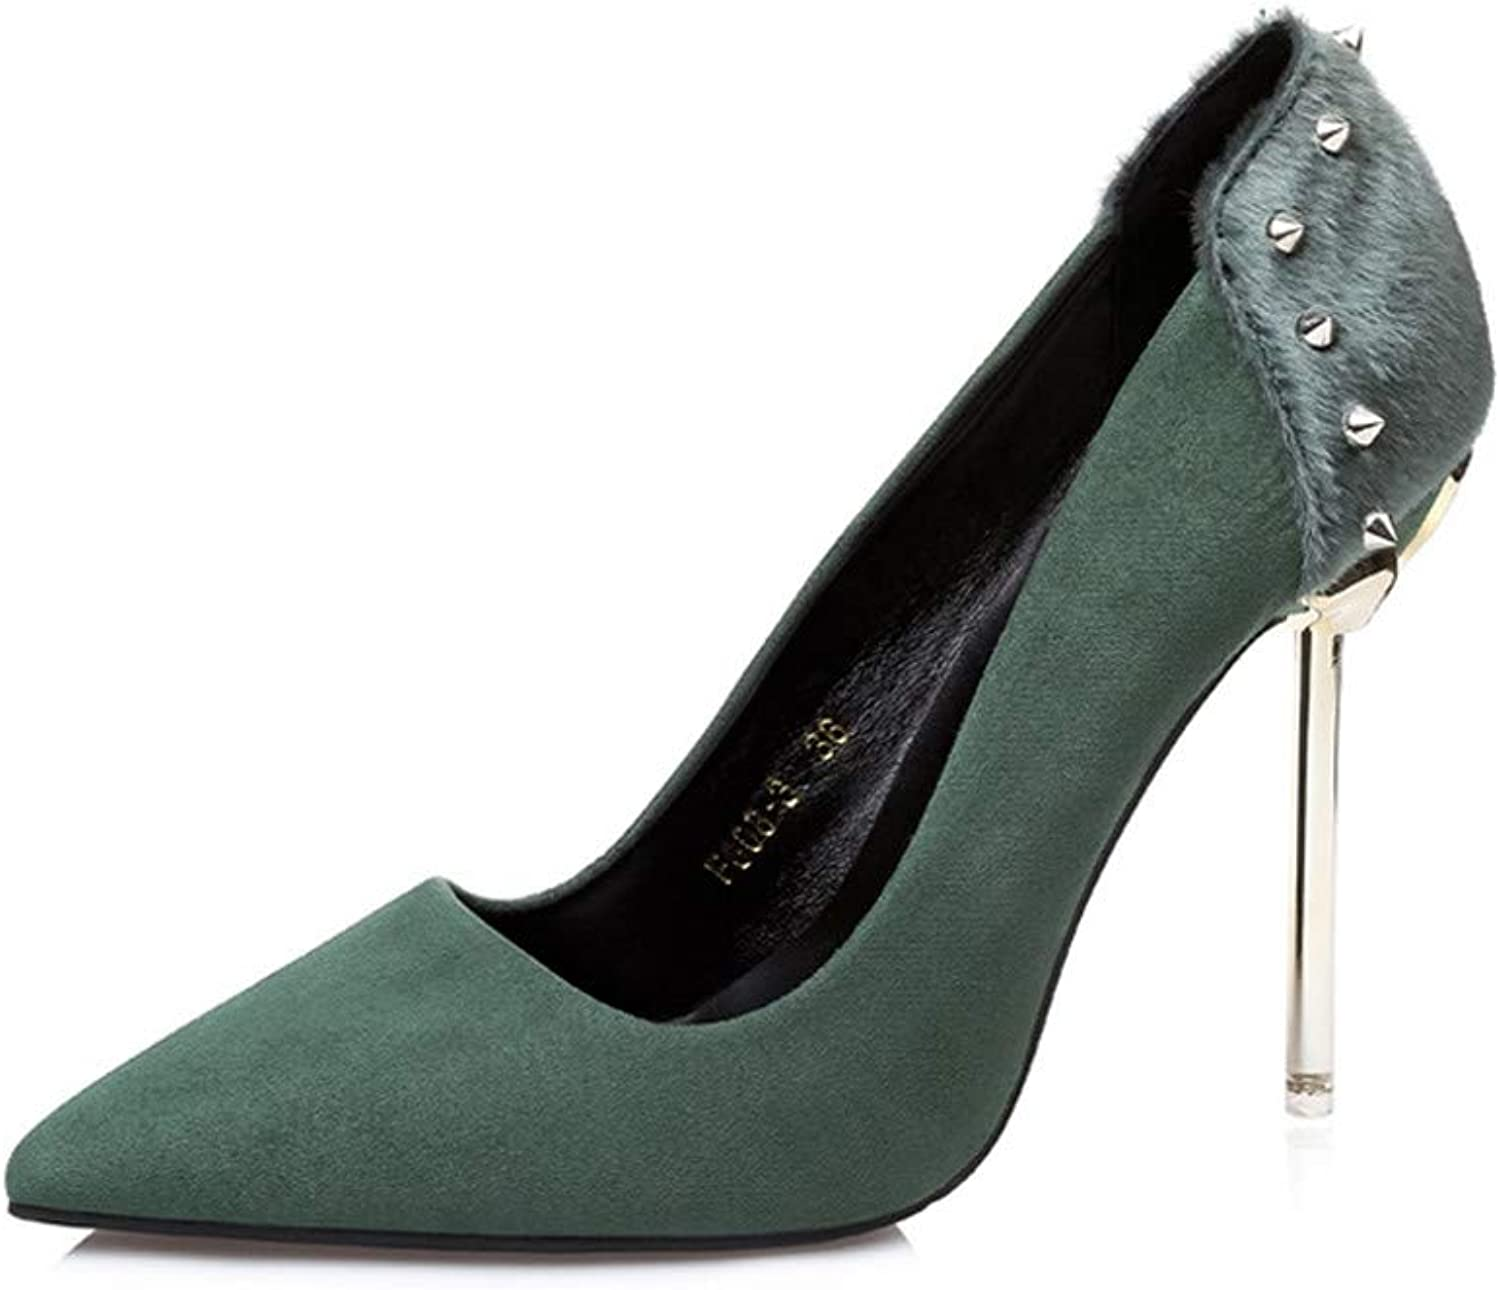 Women's Sexy Pointed Toe 3.93 inch High Heel Slip On Stiletto Pumps Large Size Basic shoes,Green,38